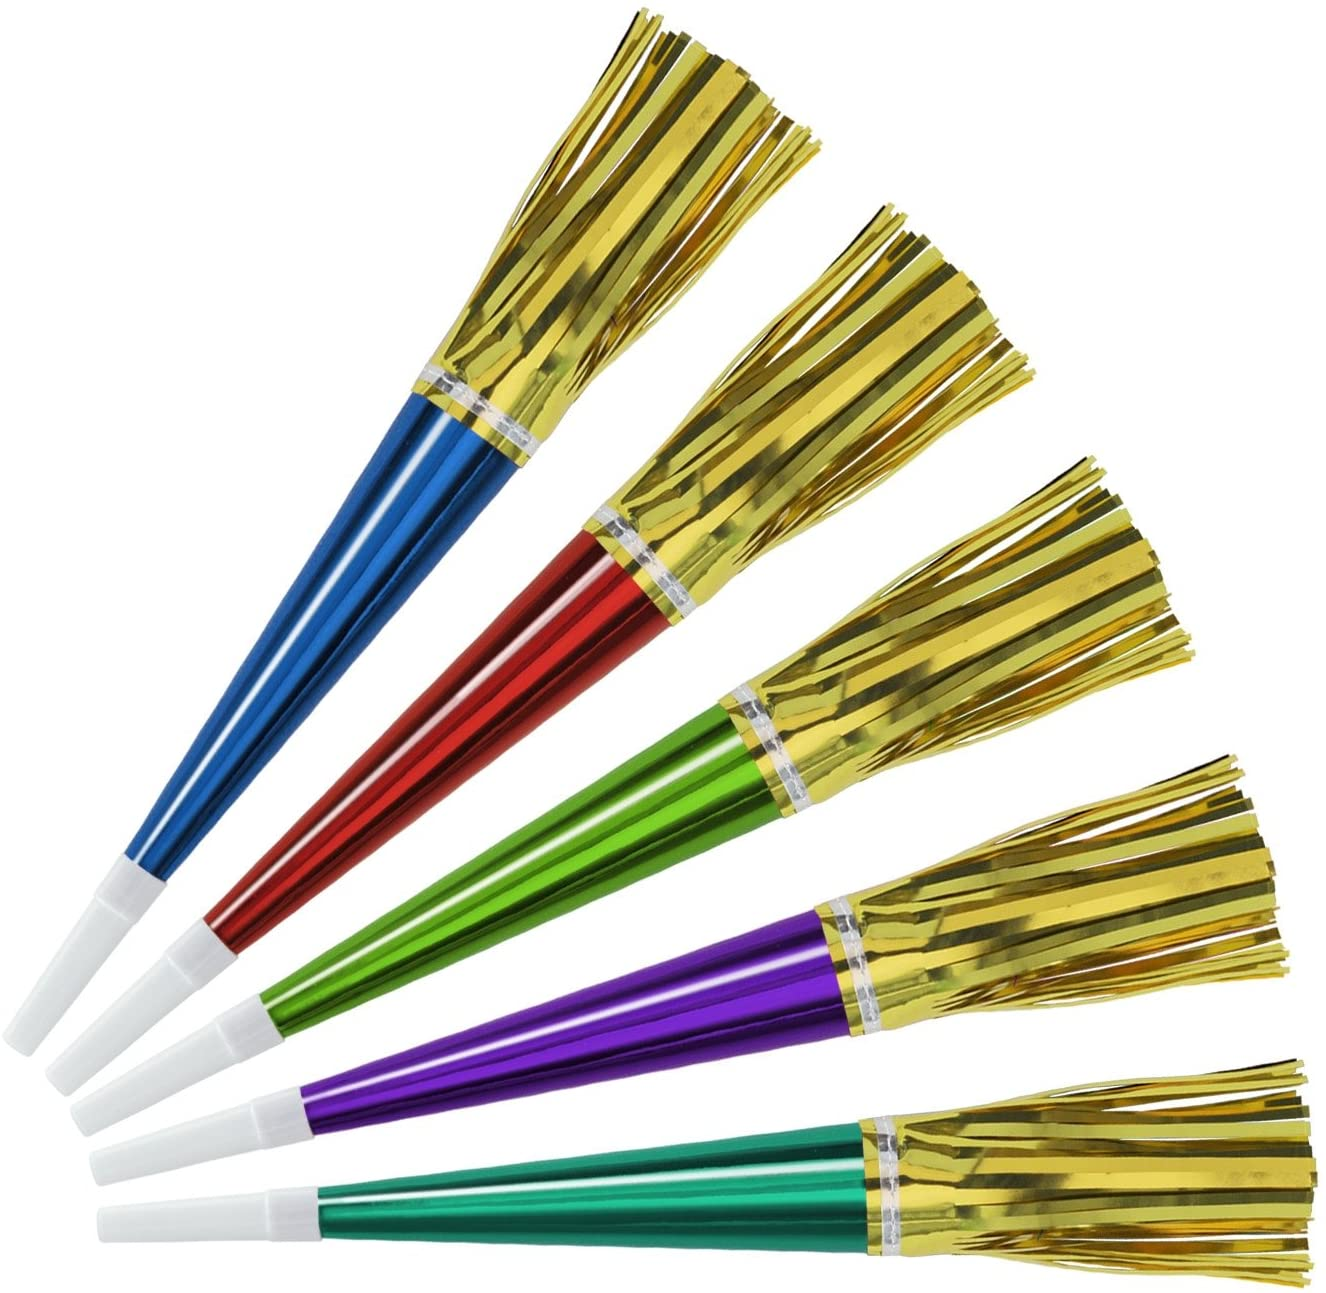 Beistle Foil Horns with Metallic Tassel Party Favors, 9-Inch, 100 Horns Per Package